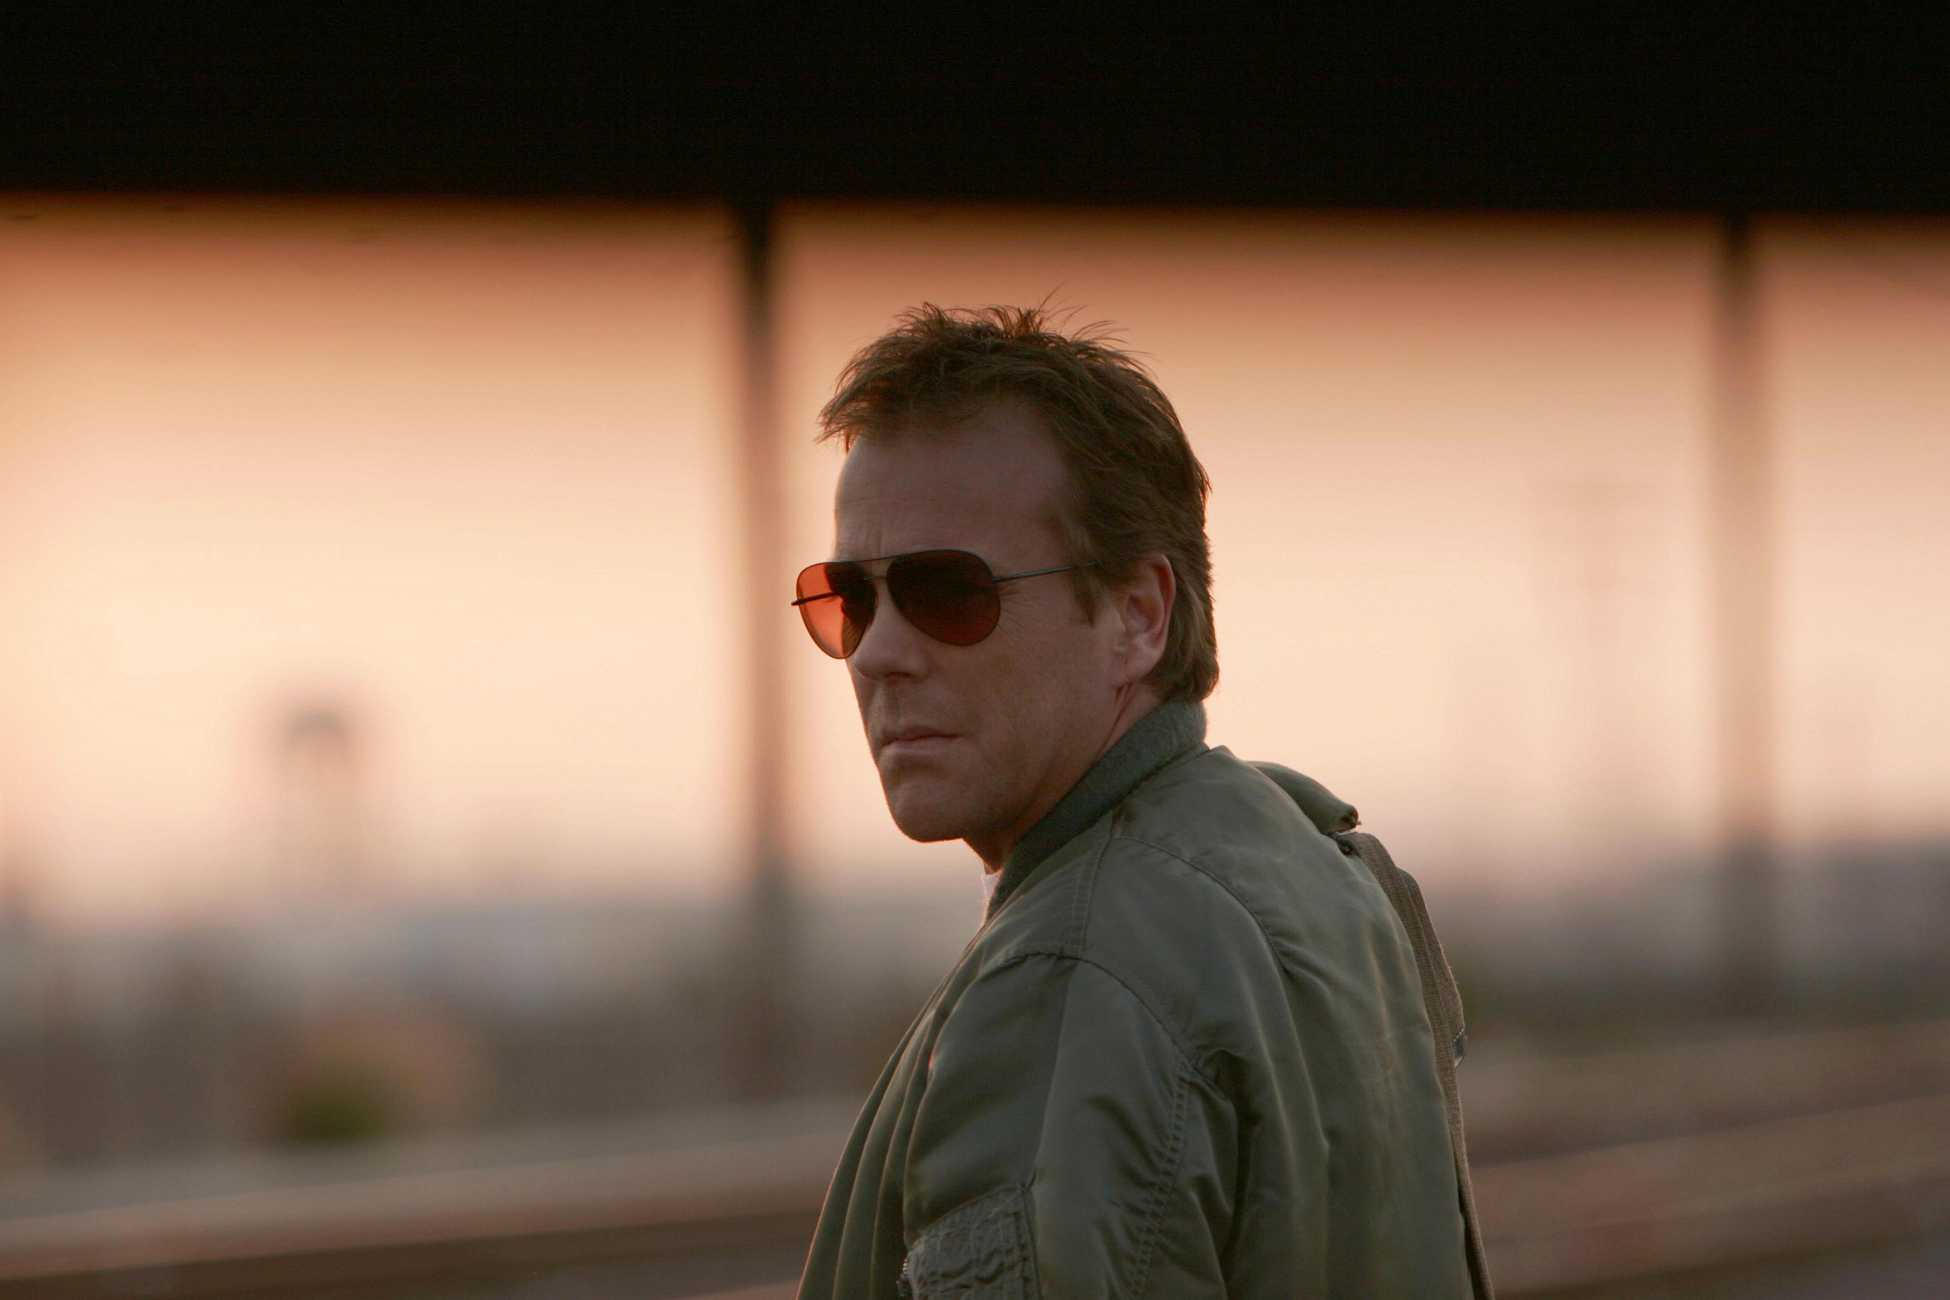 24 season 4 finale jack bauer on the train tracks 24 season 4 finale